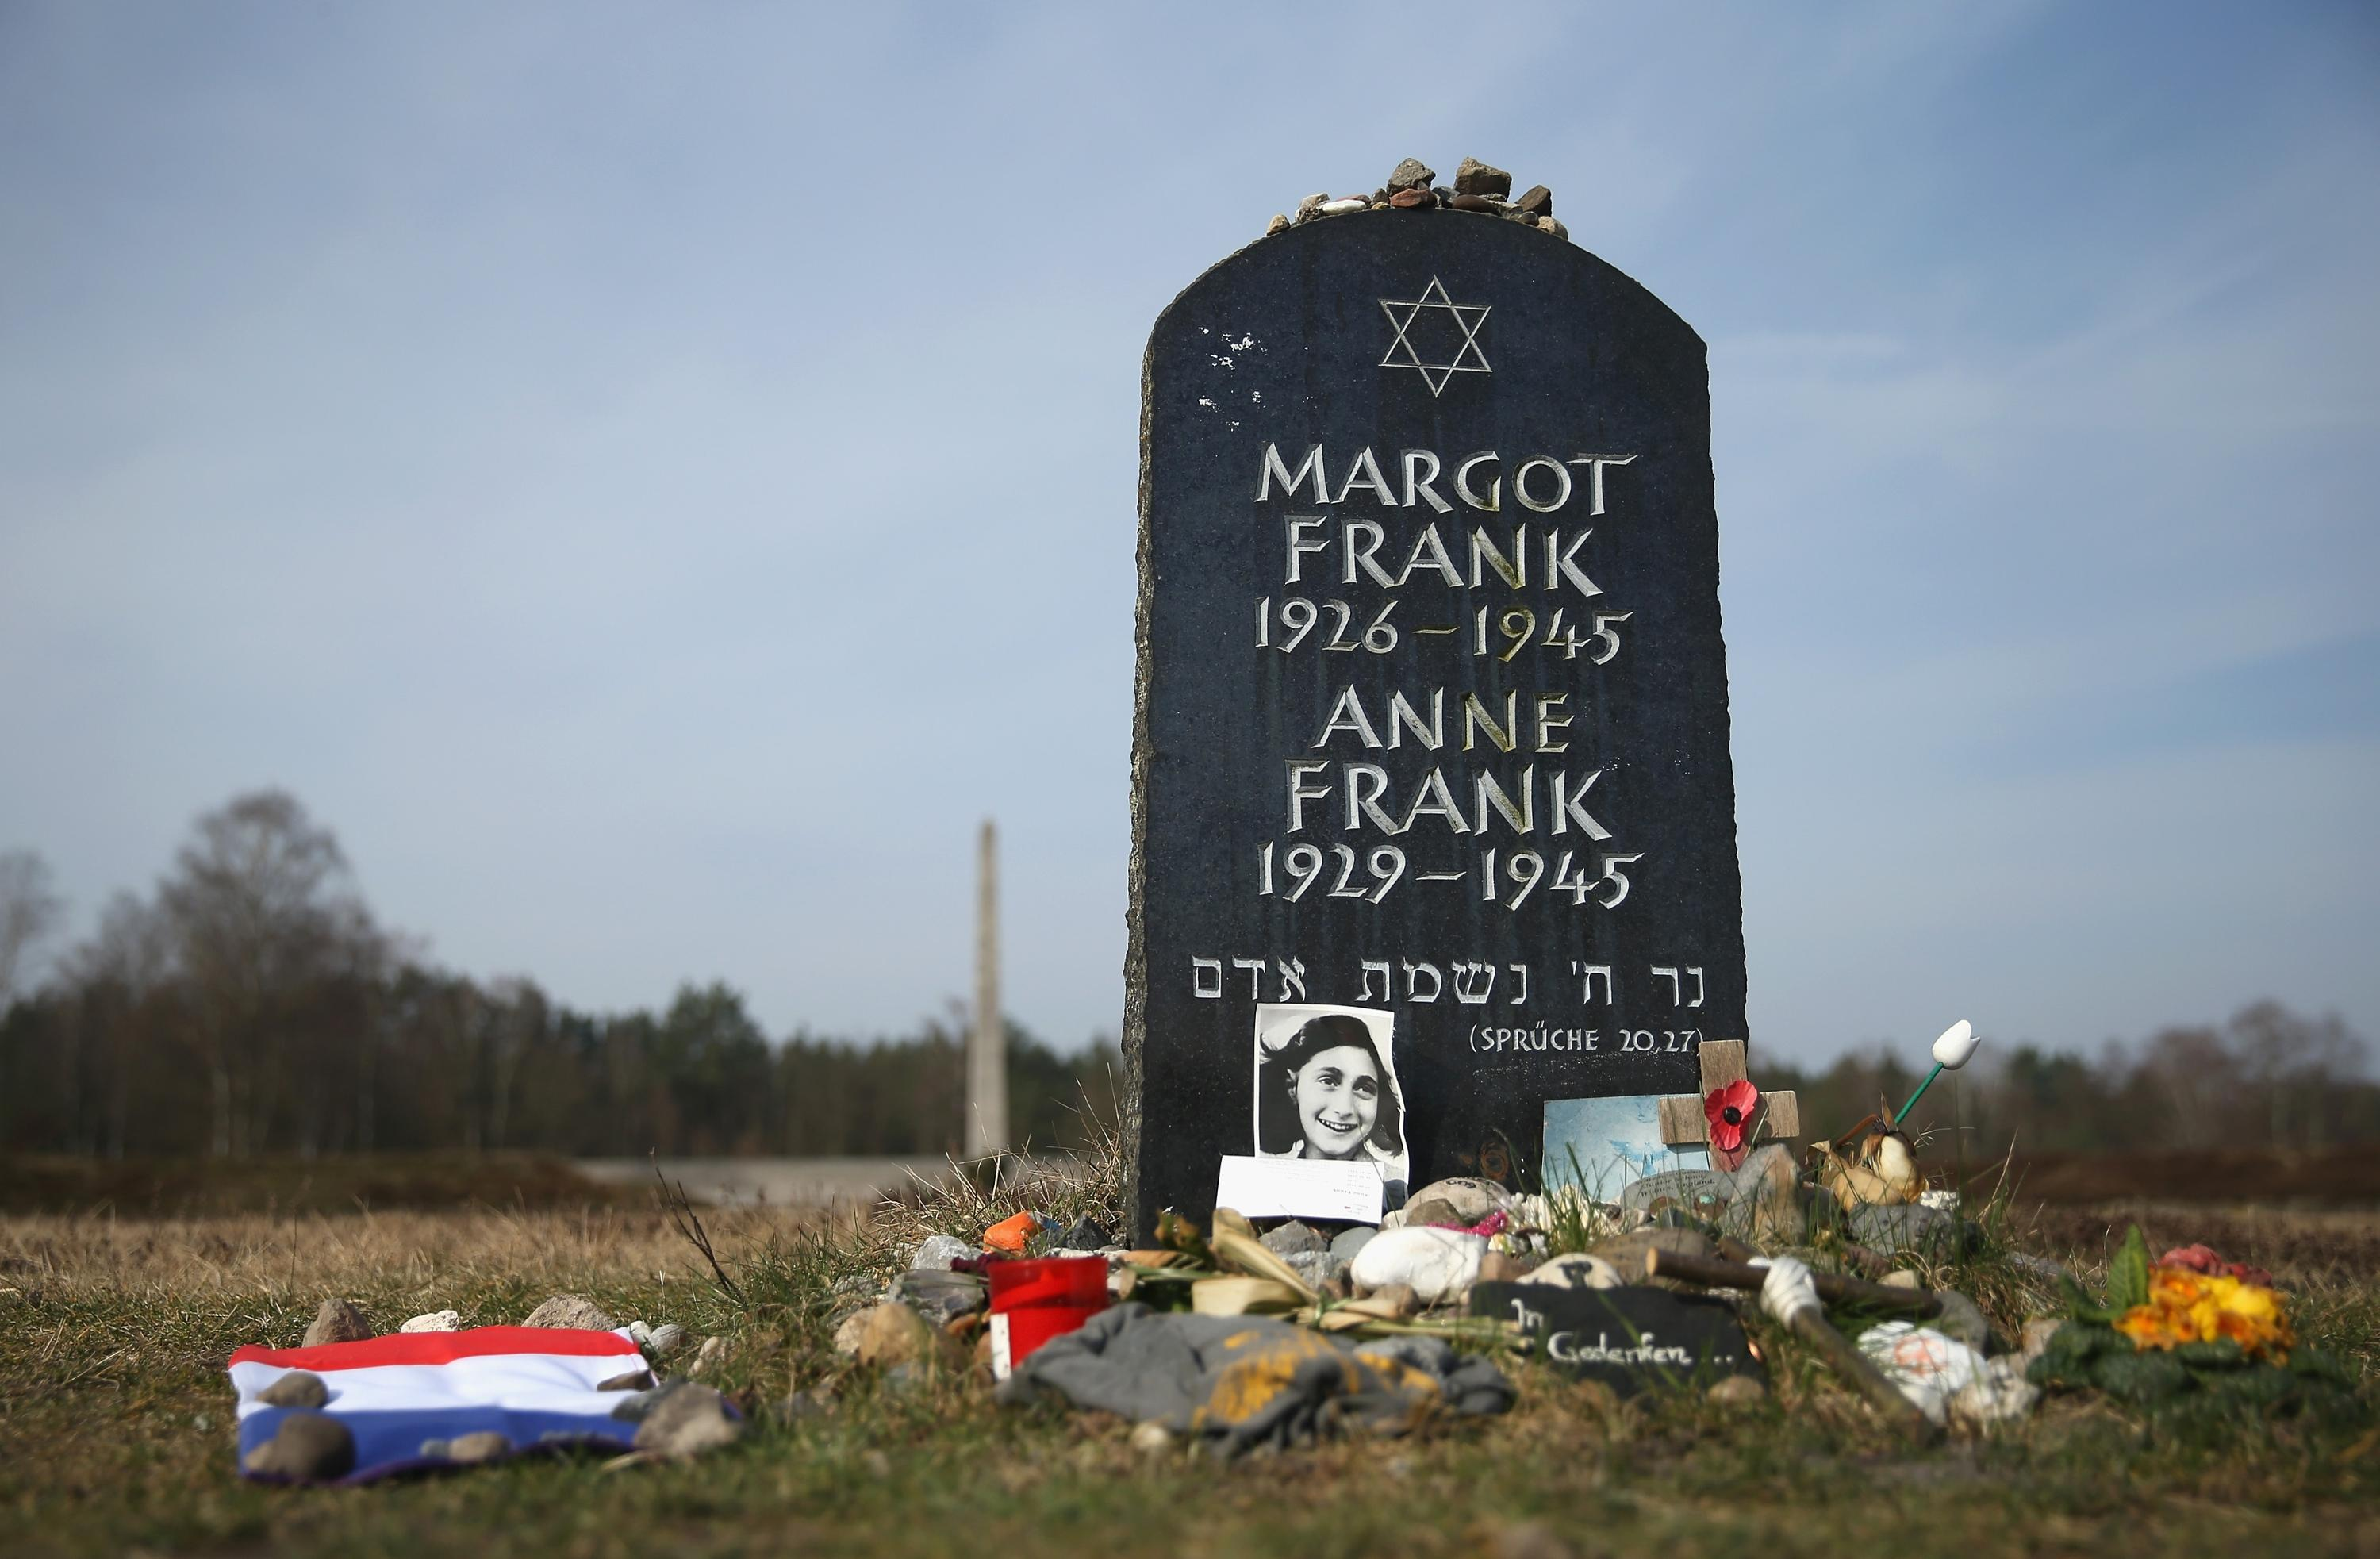 New research says Anne Frank likely died a month earlier